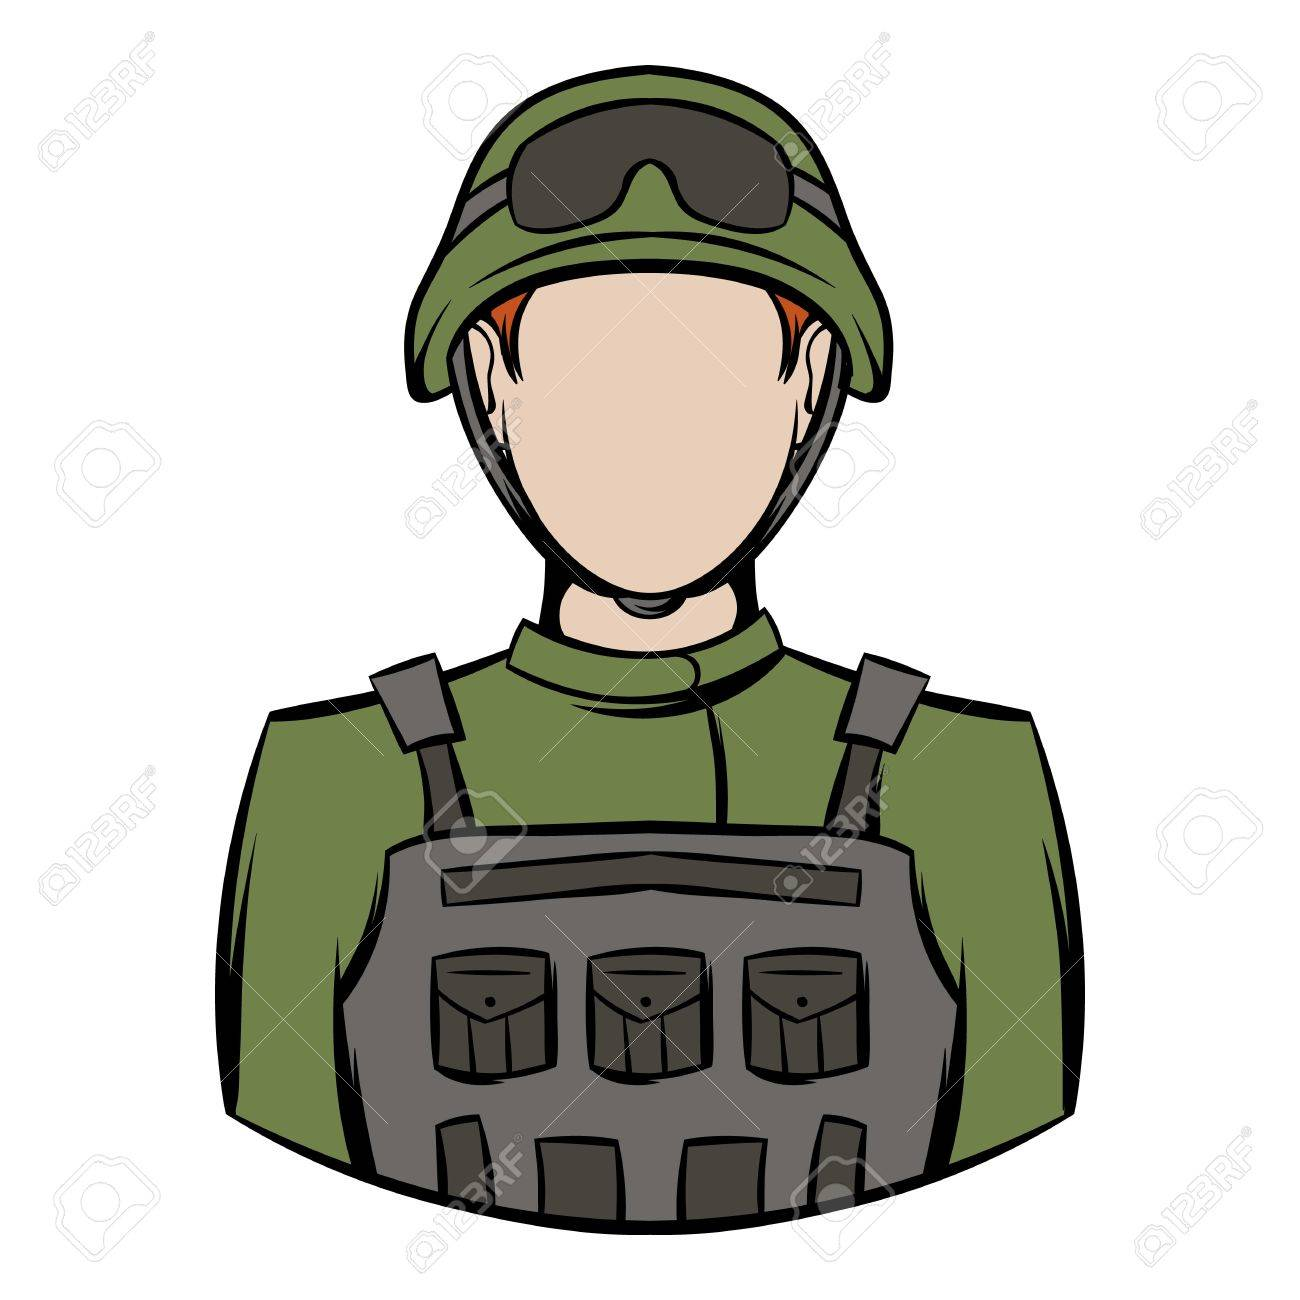 Soldier icon cartoon